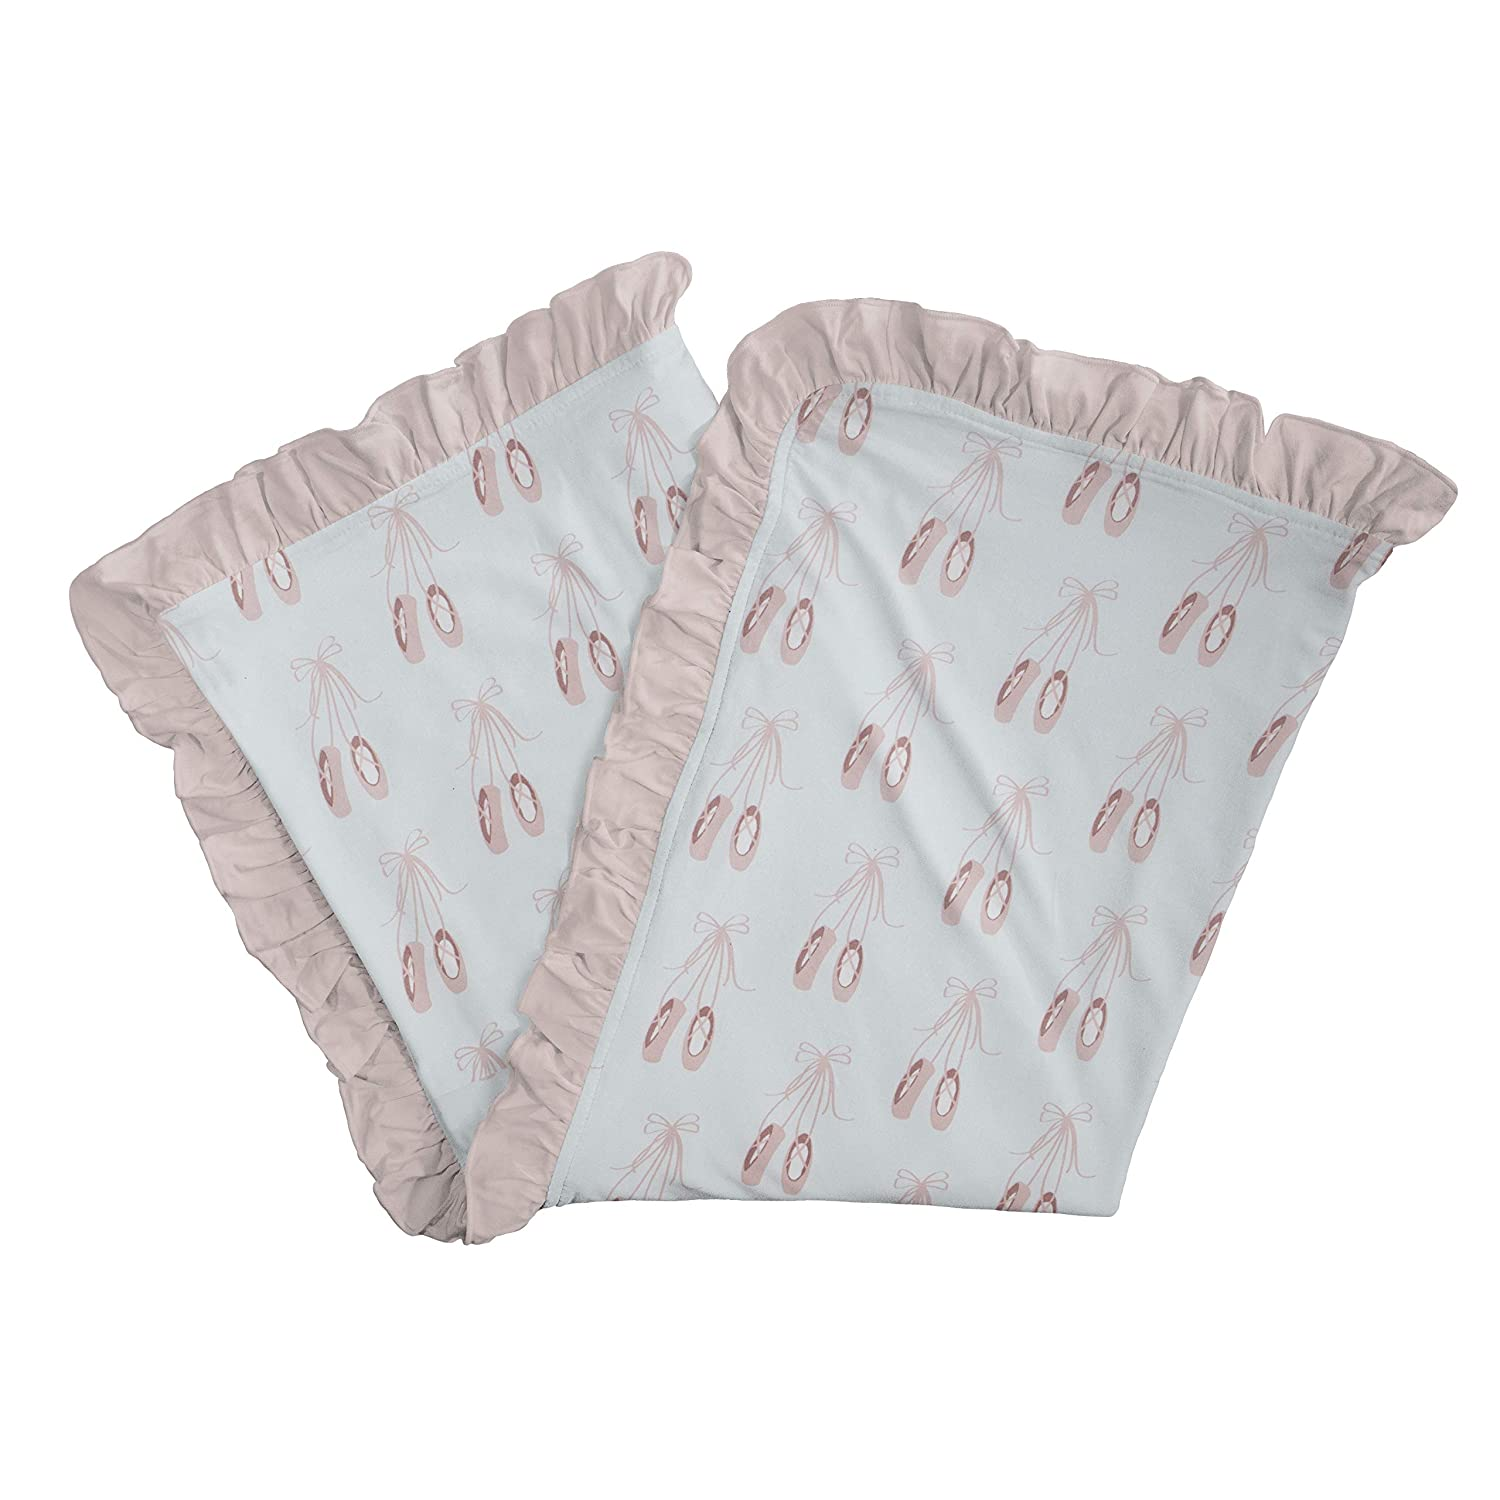 KicKee Pants Print Stroller Blanket Supreme Max 90% OFF Added Ruffles Deluxe with